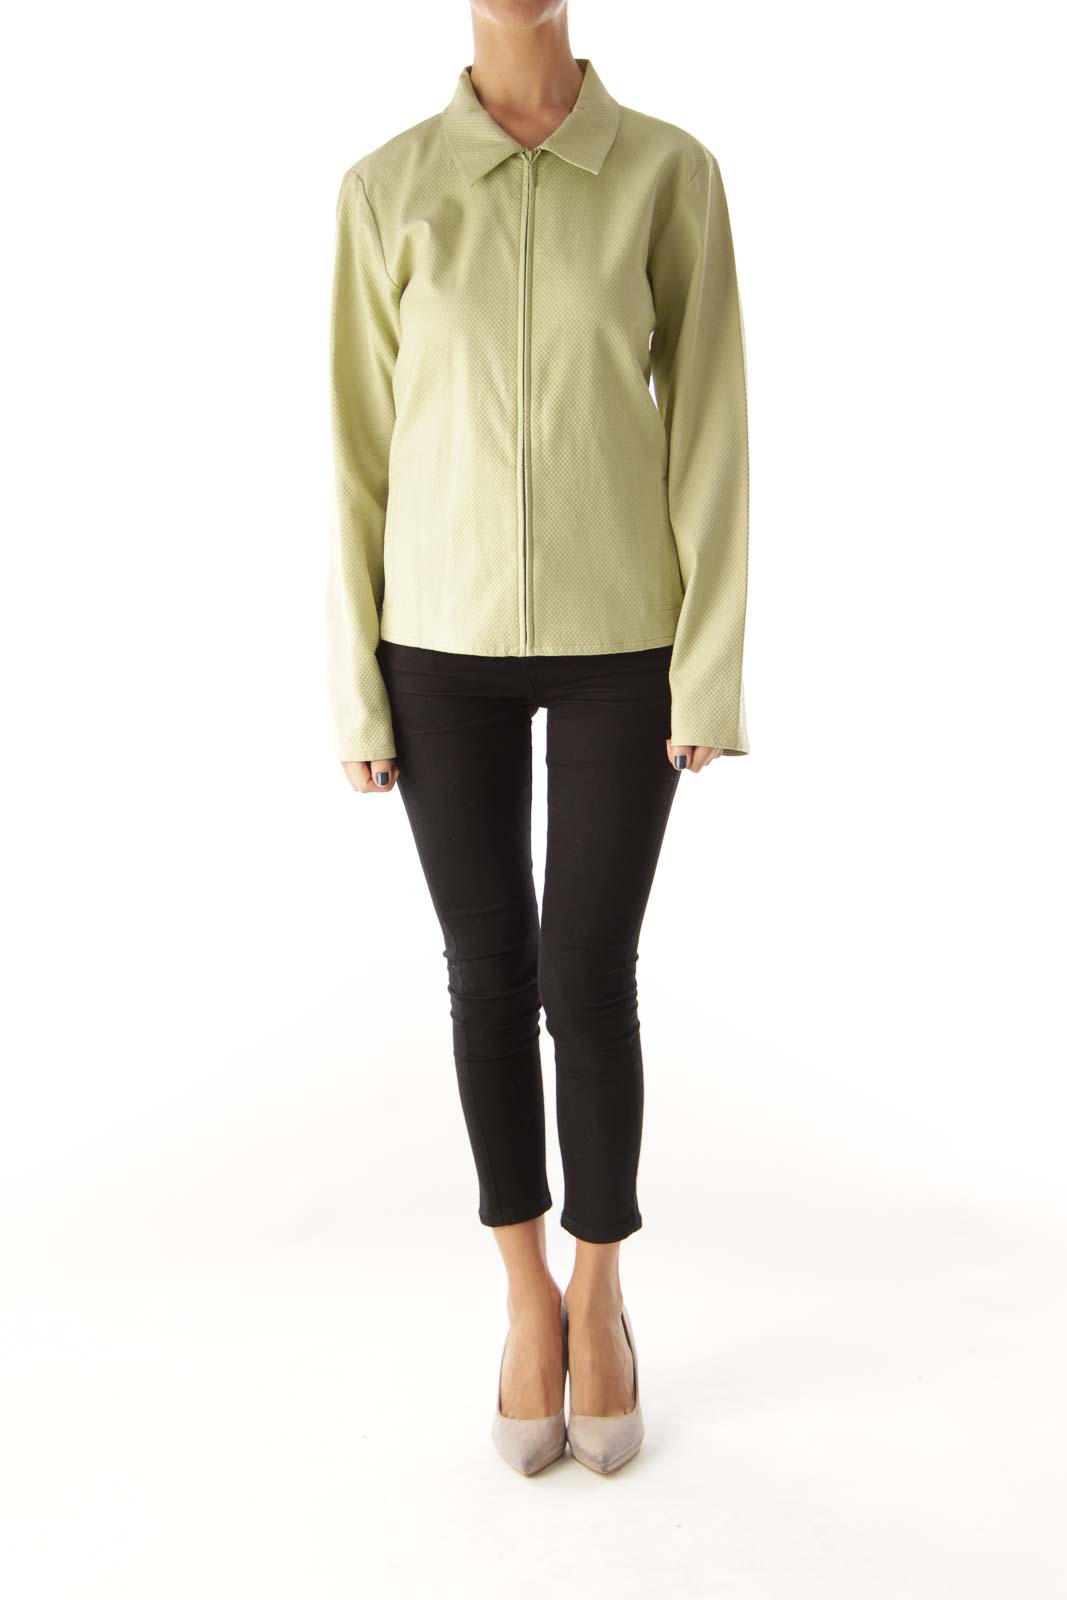 Green Front Ziper JAcket